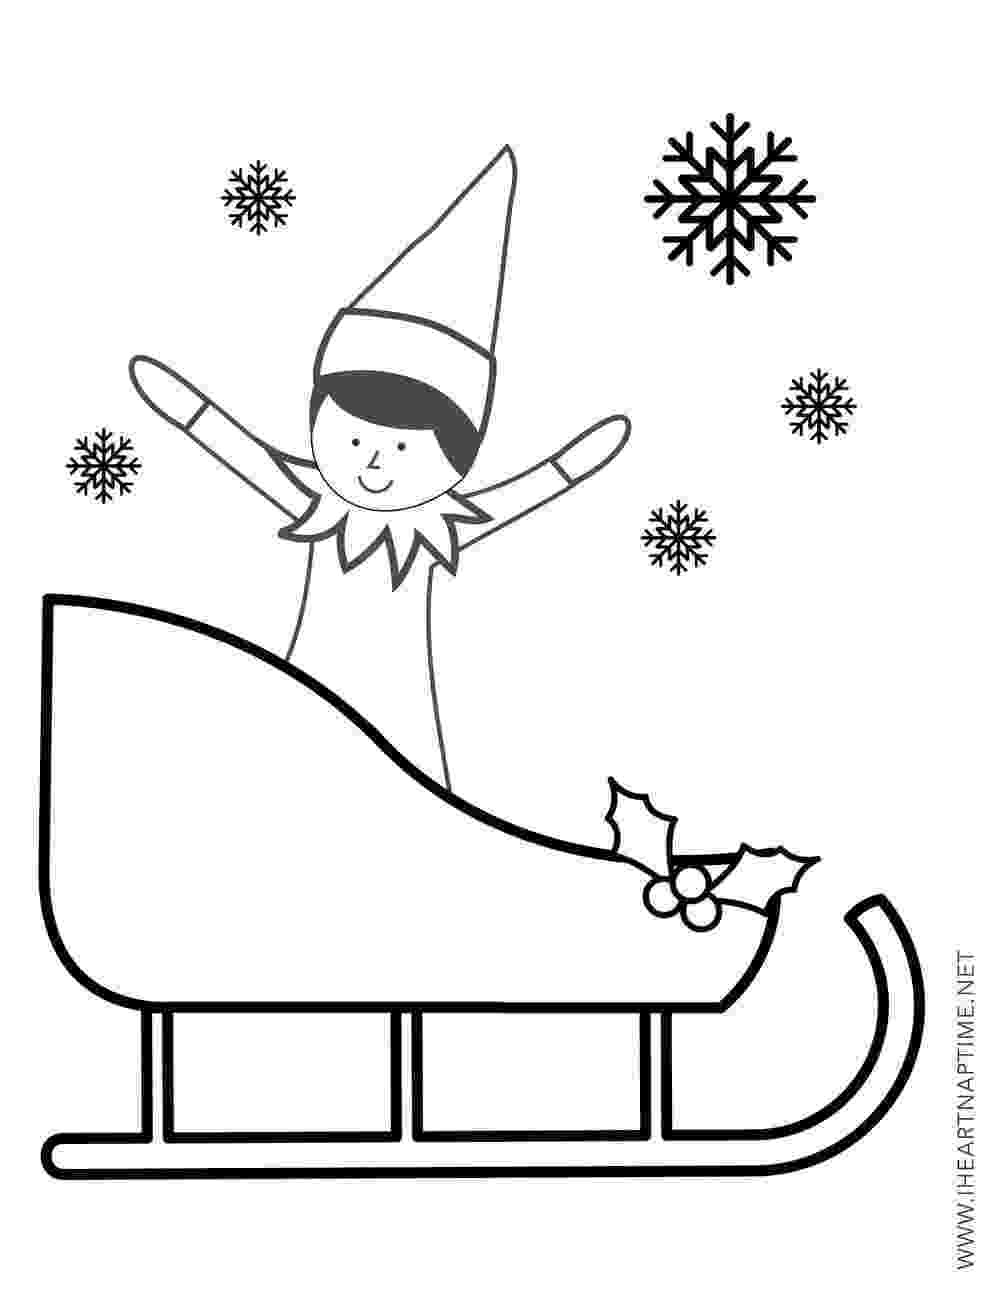 elf on the shelf printable coloring pages 15 best coloring the on the shelf images on pinterest printable on elf pages the shelf coloring